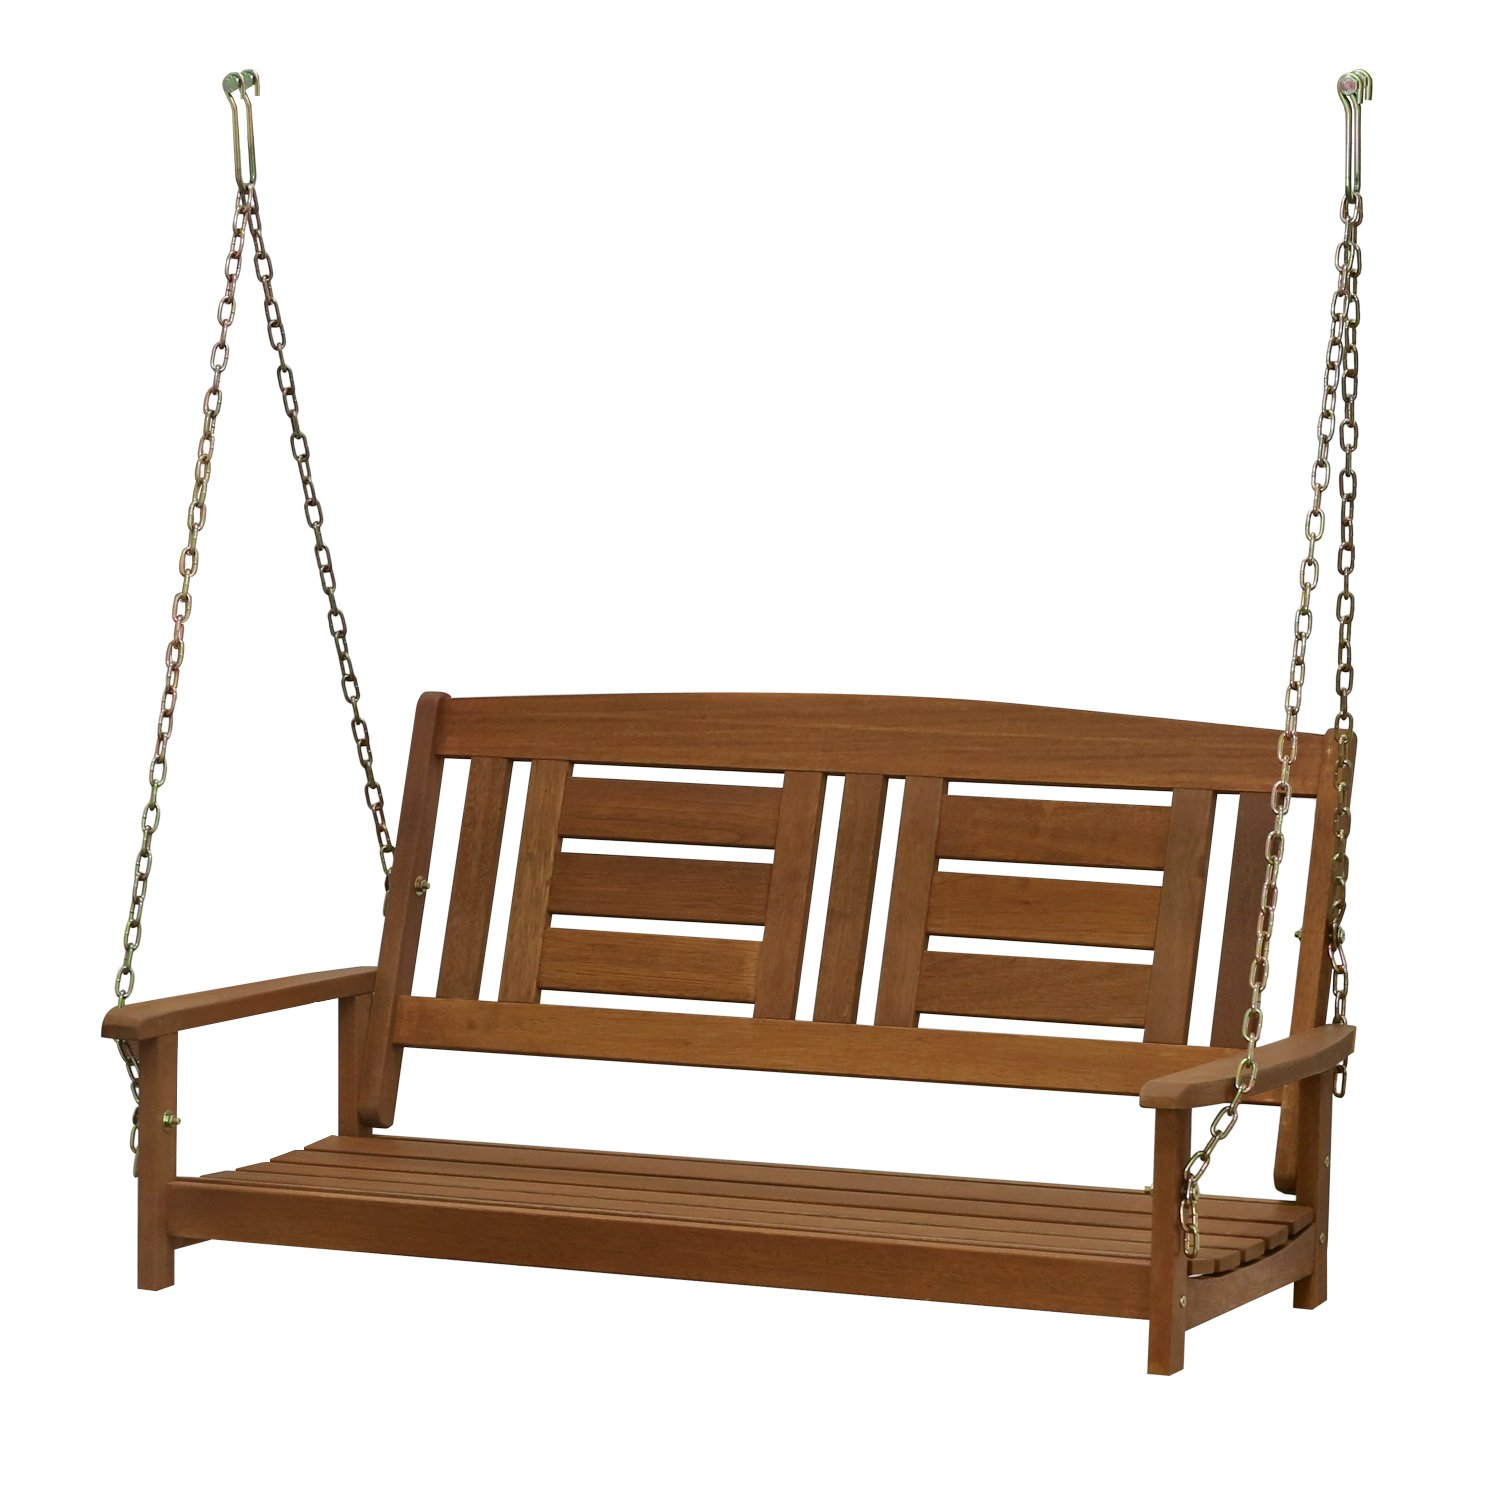 Furinno Tioman Hardwood Hanging Porch Swing with Chain